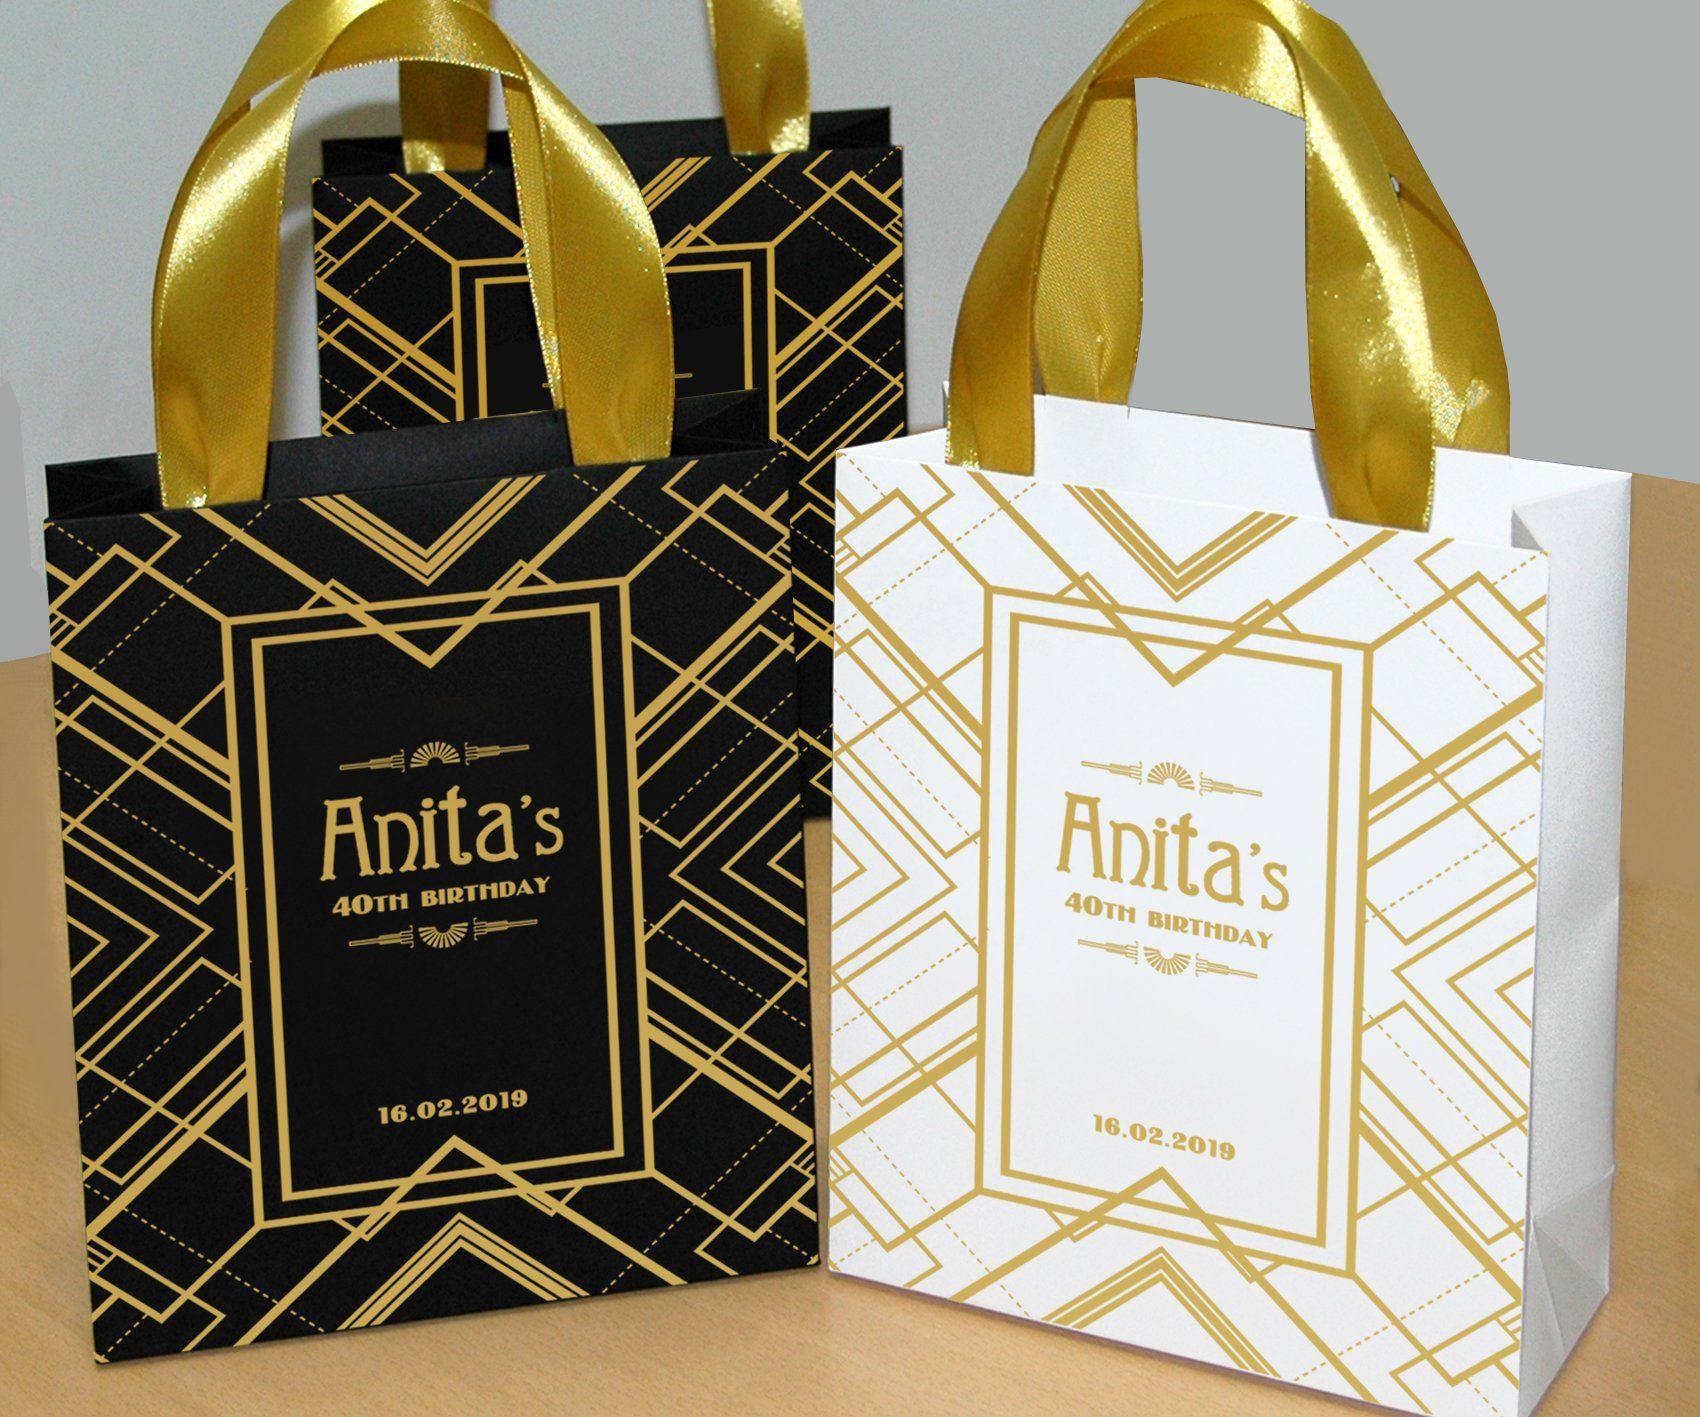 52afaaa6f952 20 Gatsby Style Birthday Gift Bags with gold satin ribbon handles and your  name